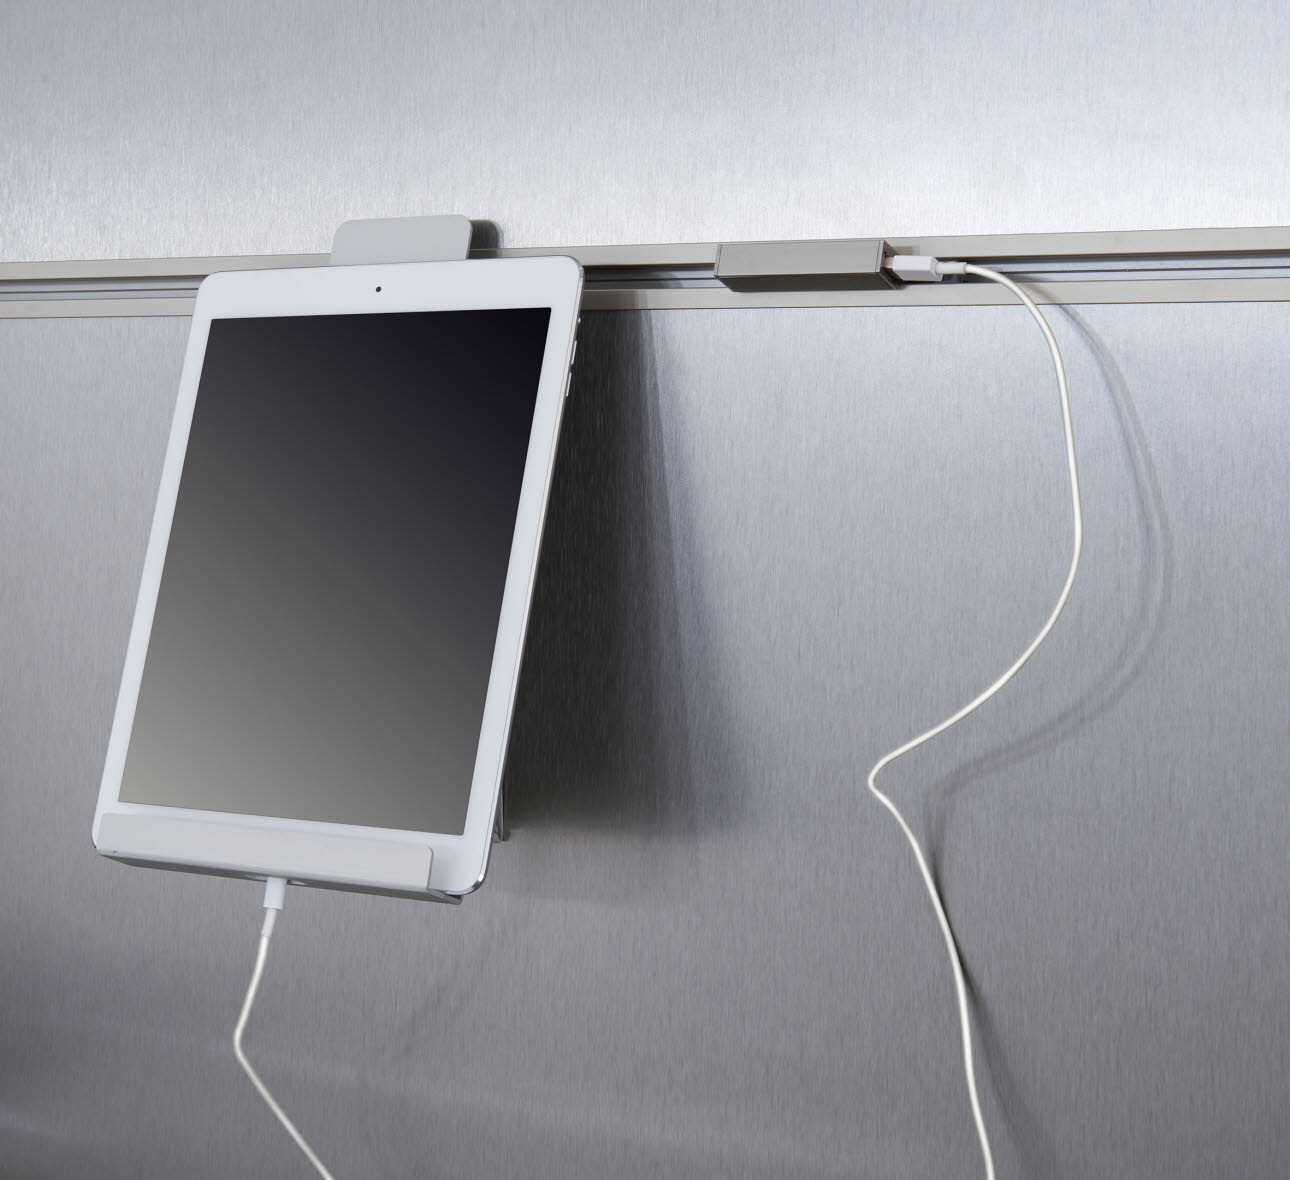 USB-charging station - white tablet